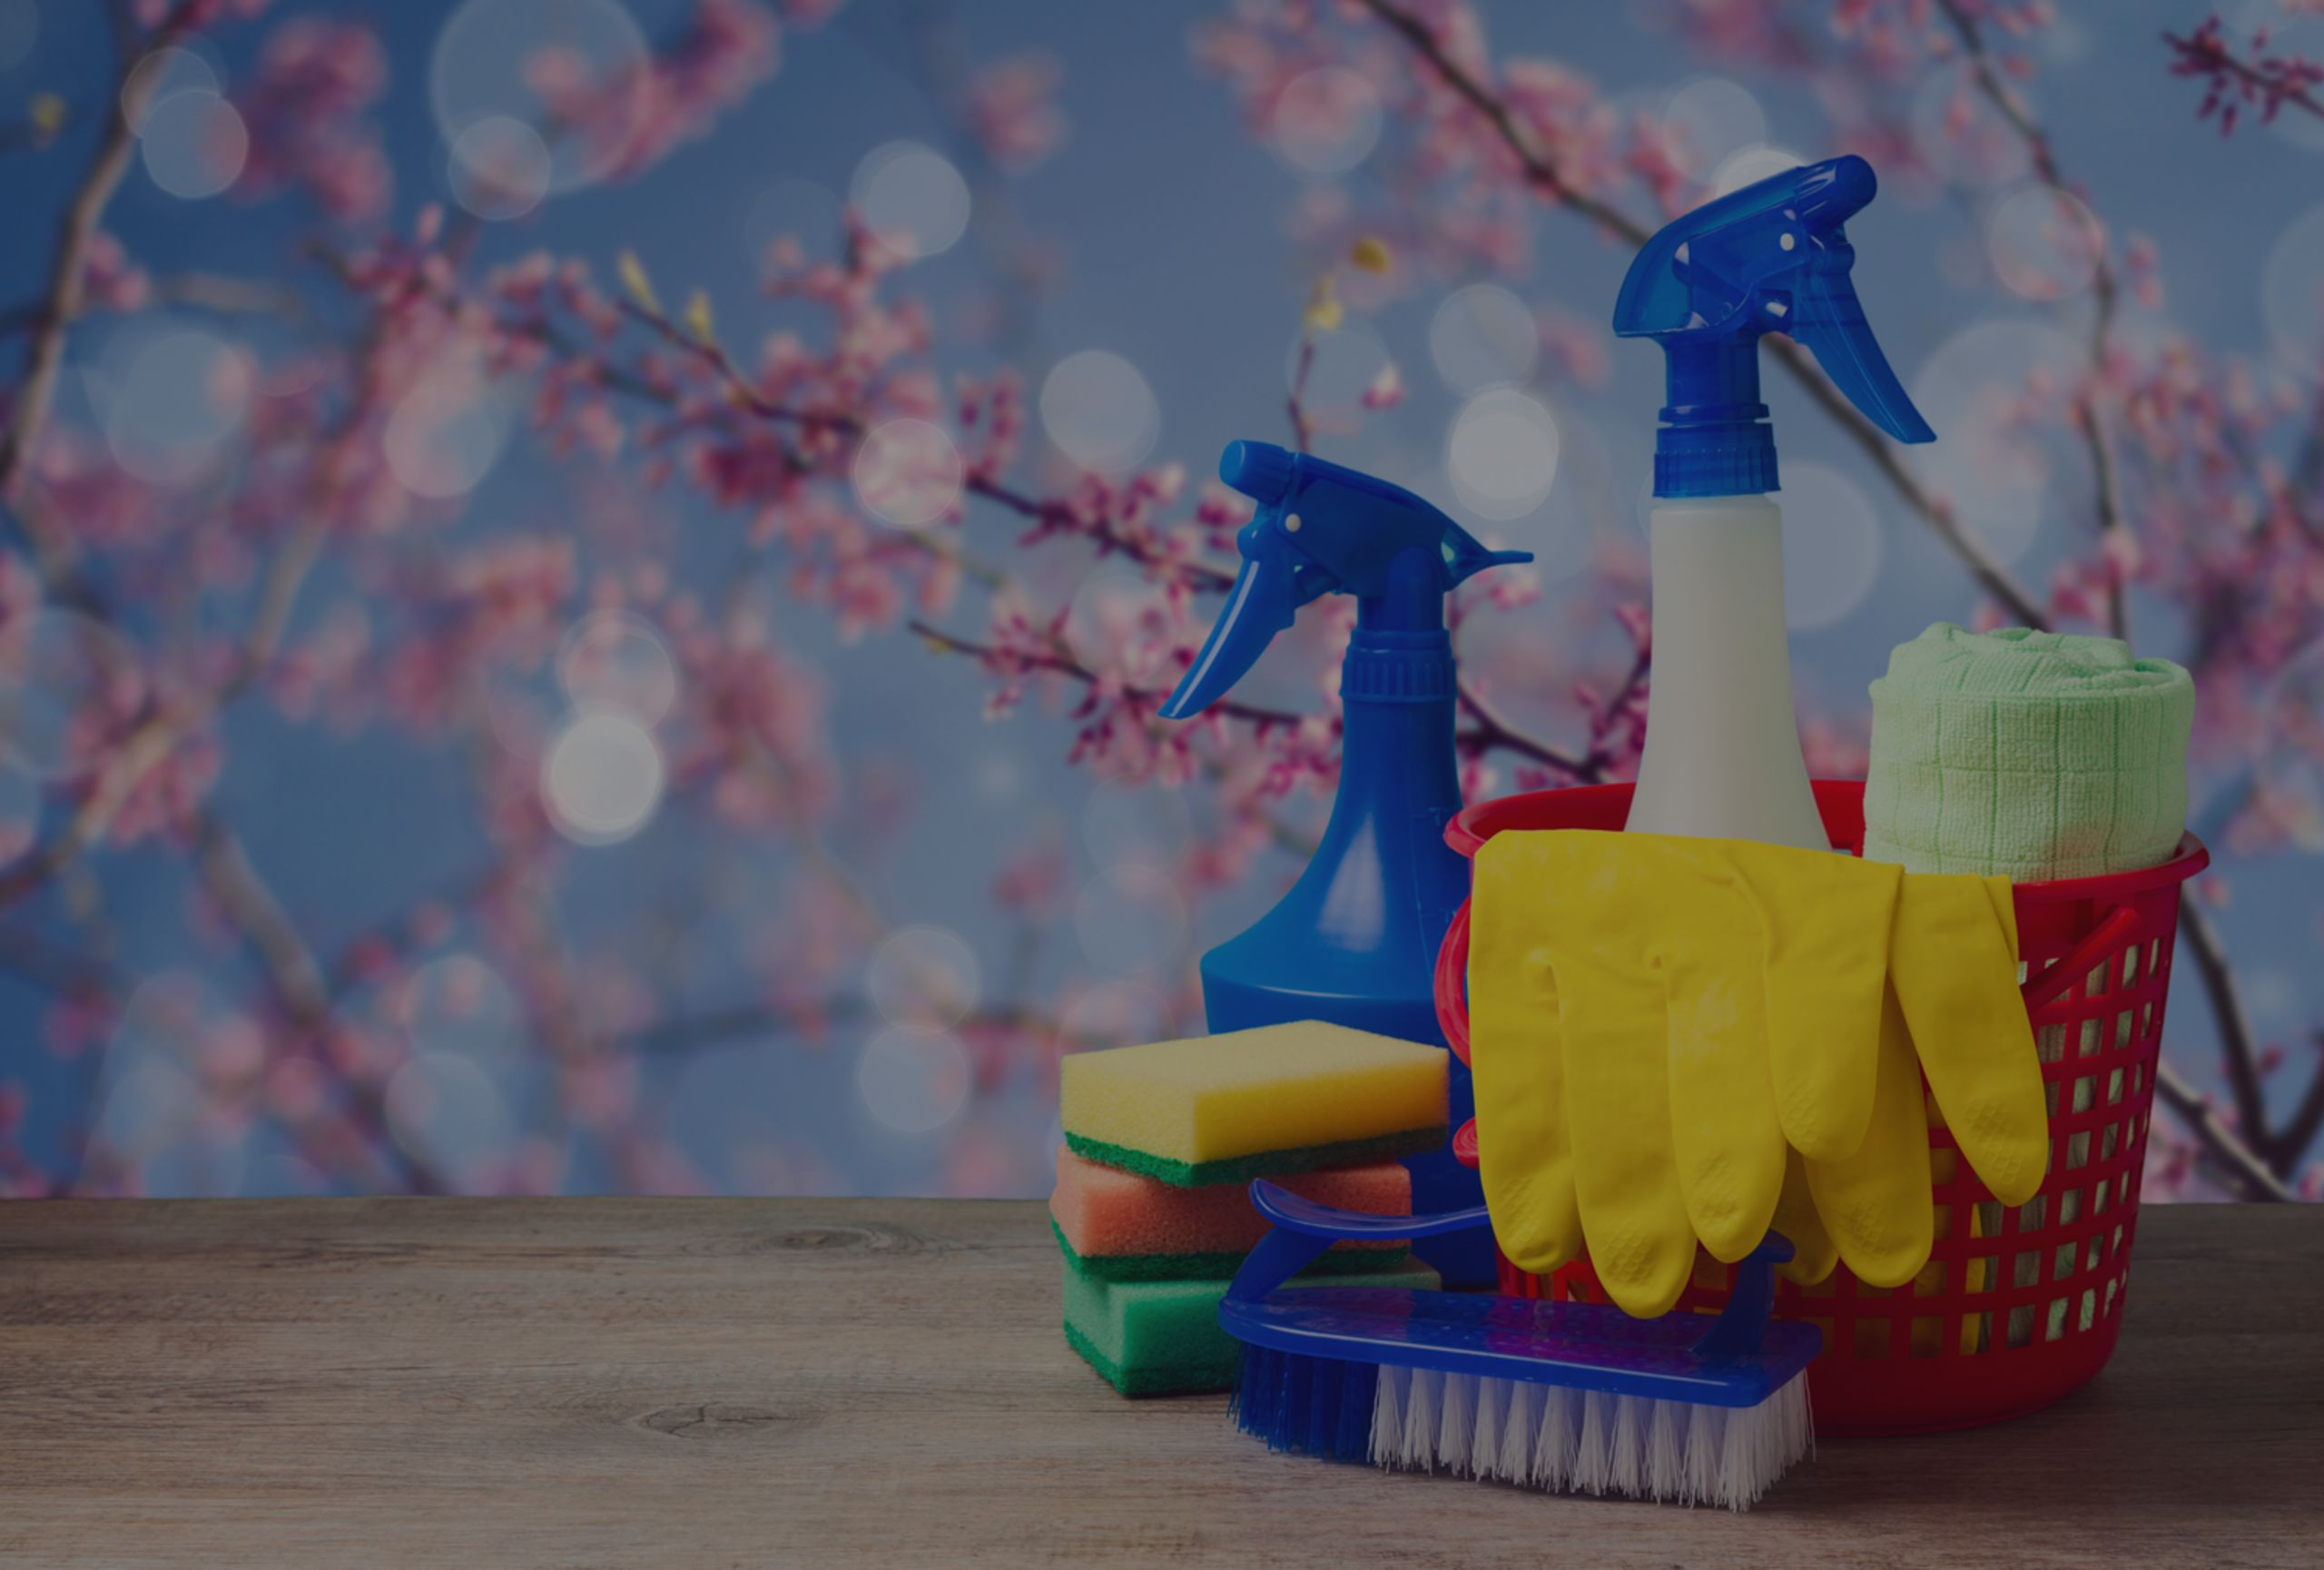 Spring Check-Up: Follow these 5 simple tips for a Healthy Home!